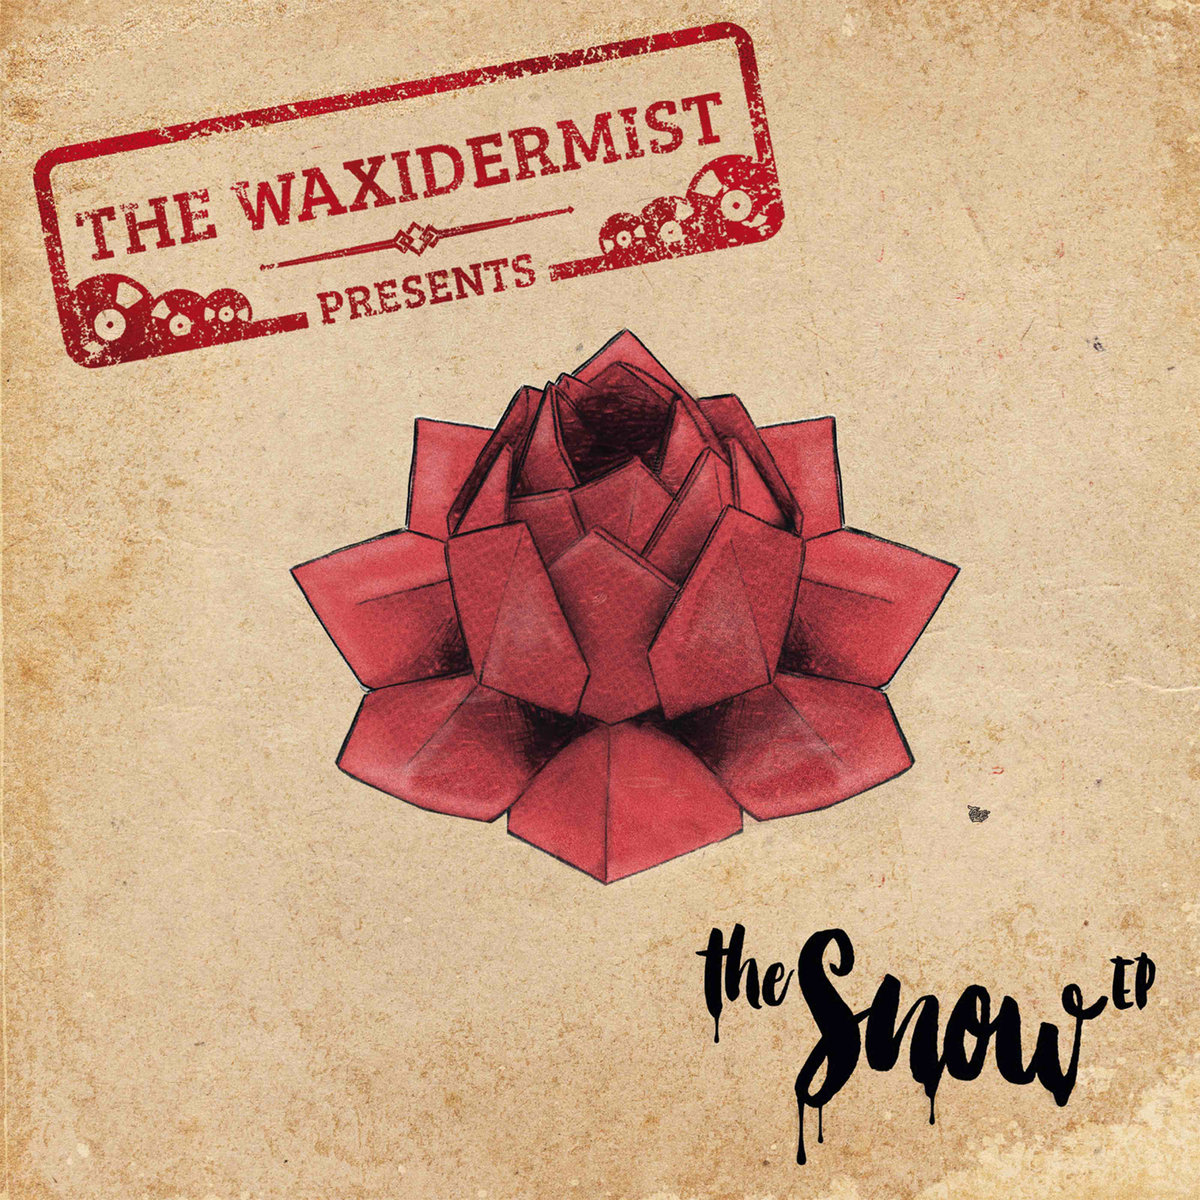 THE WAXIDERMIST : THE SNOW